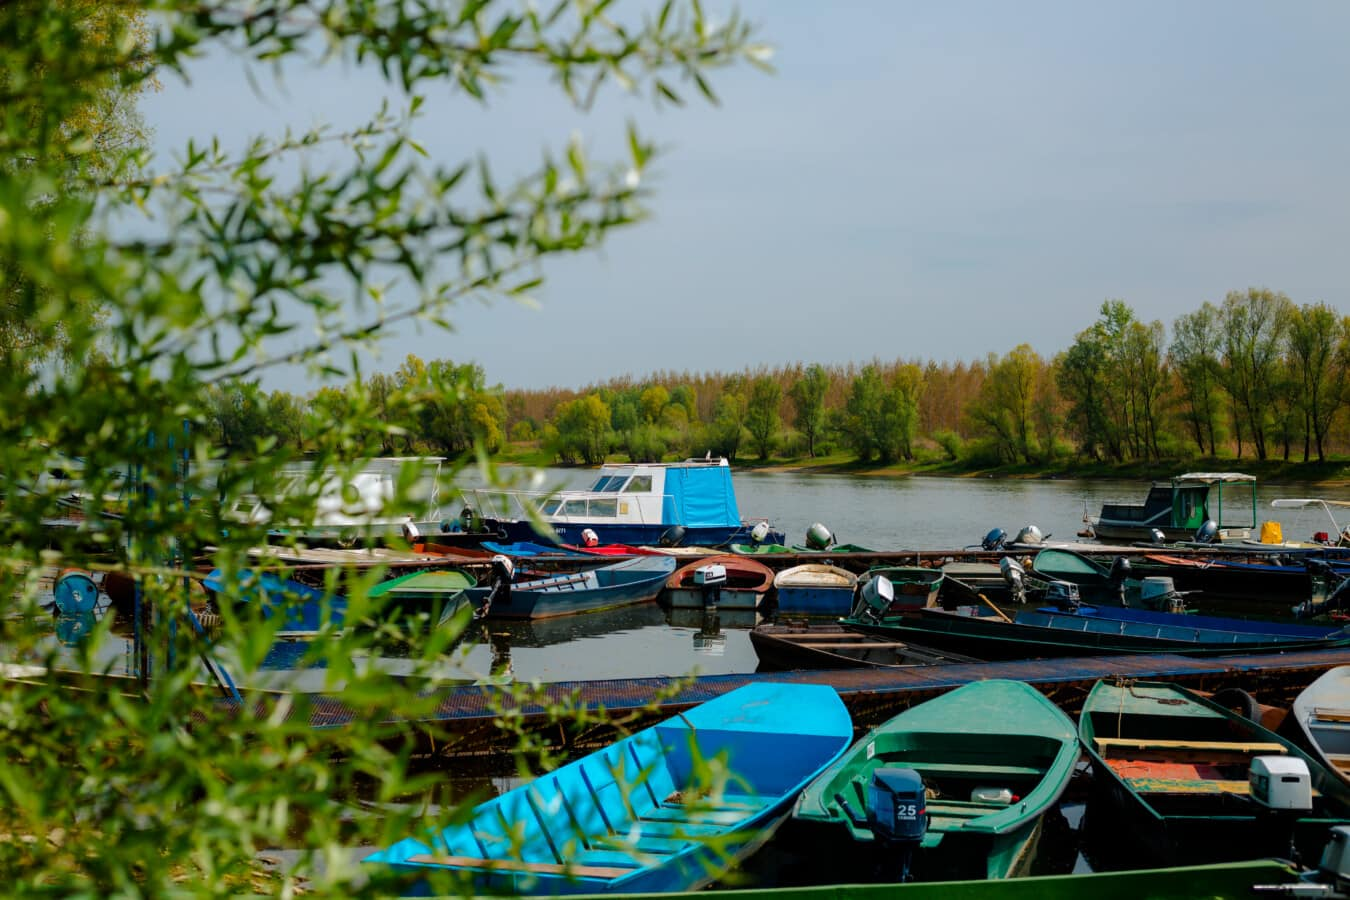 water, boat, lake, nature, summer, river, reflection, watercraft, pier, outdoors